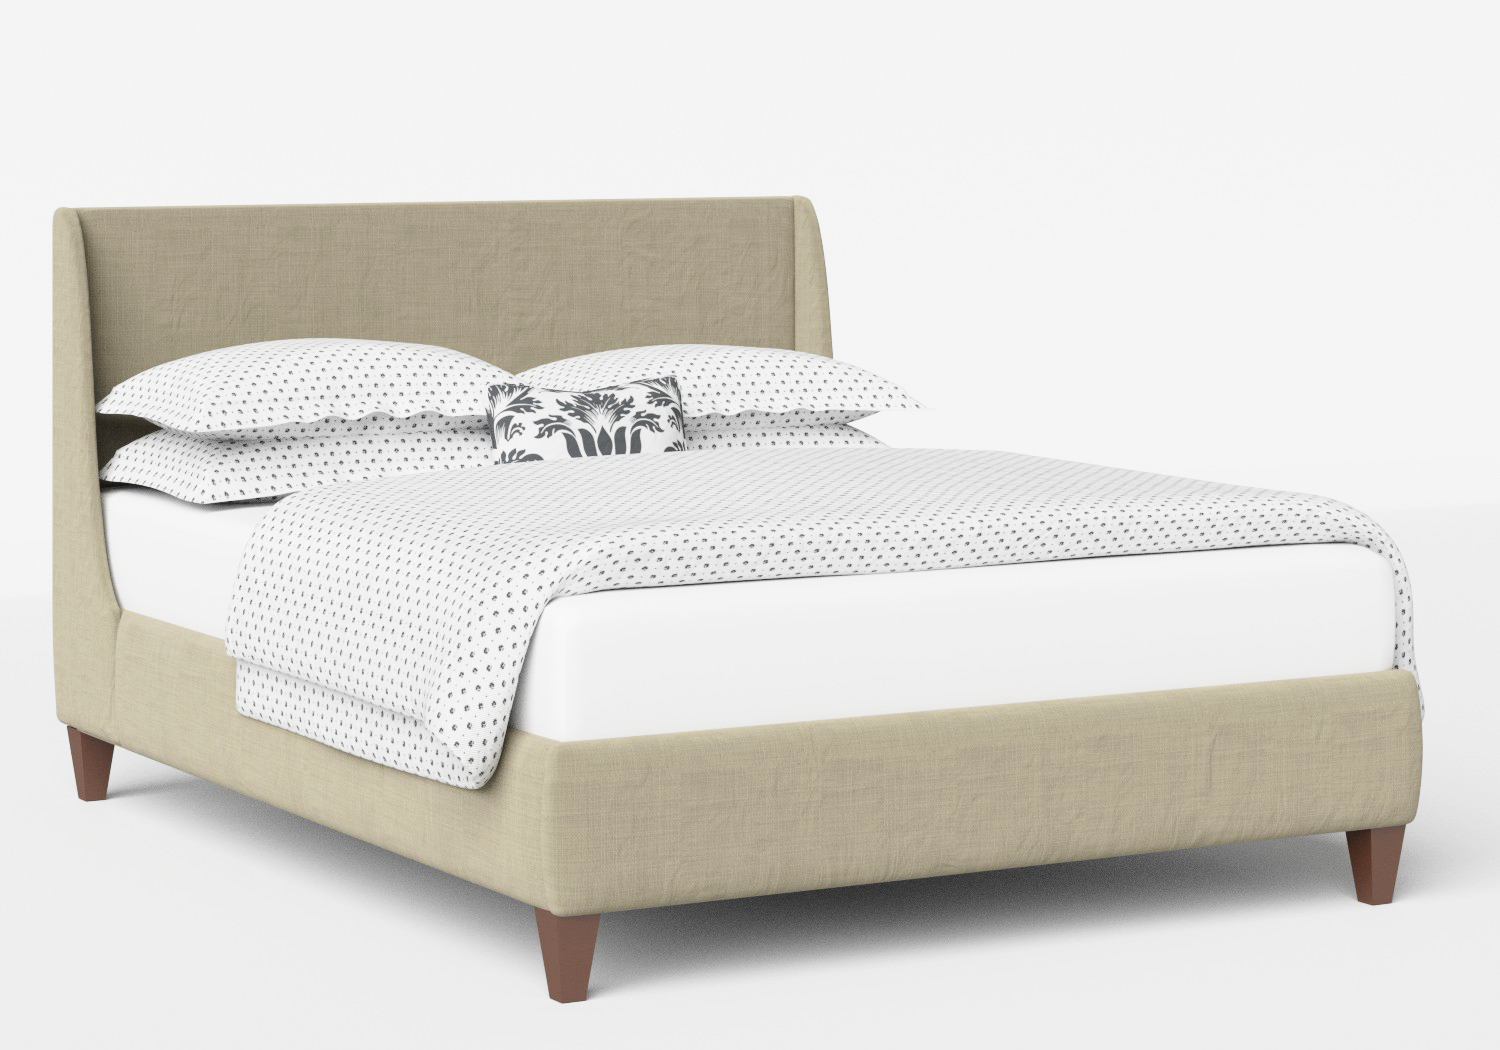 Sunderland Upholstered Bed in Natural fabric shown with Juno 1 mattress